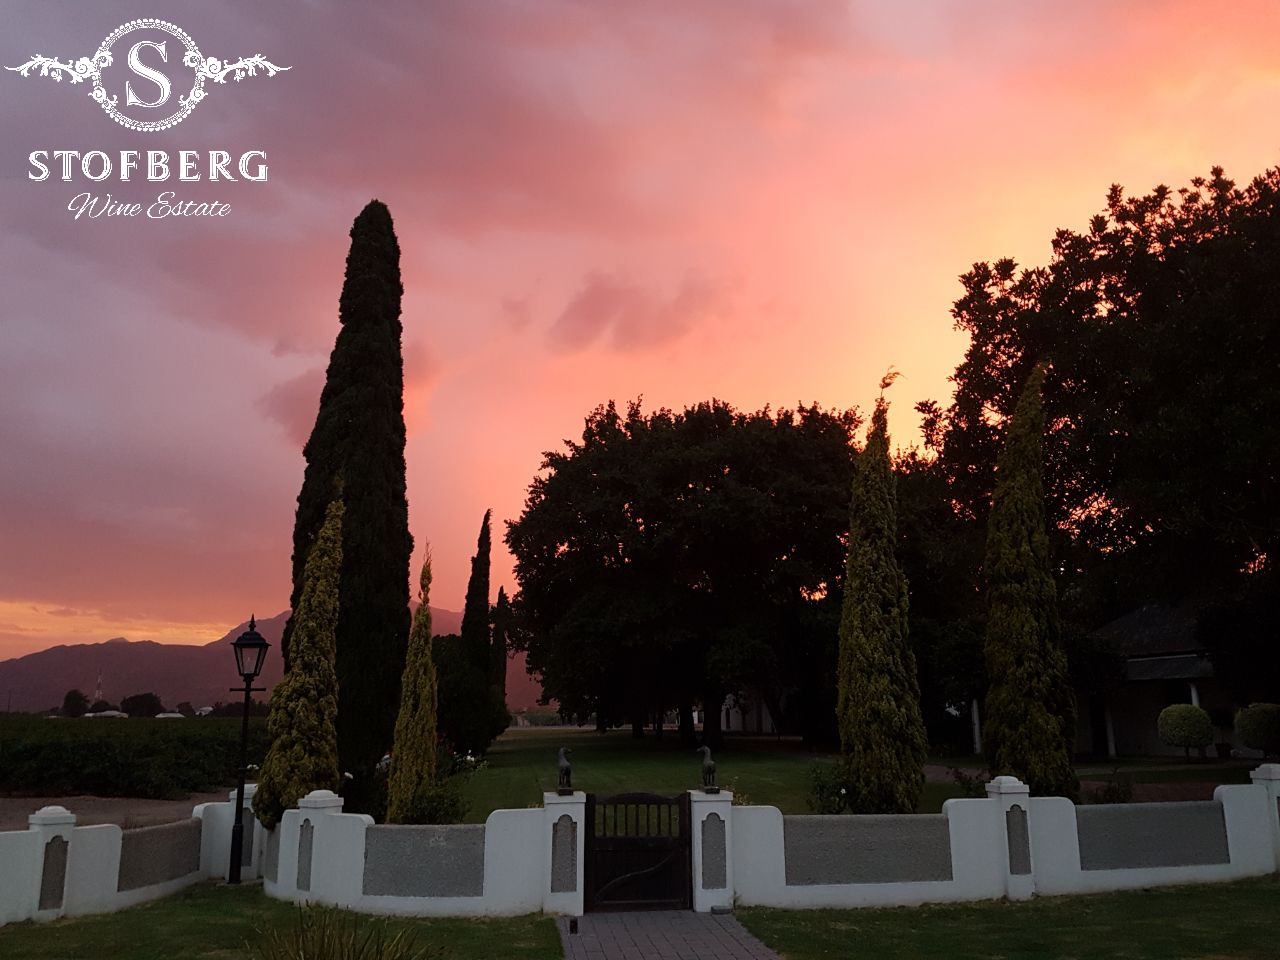 Stofberg Wines Estate